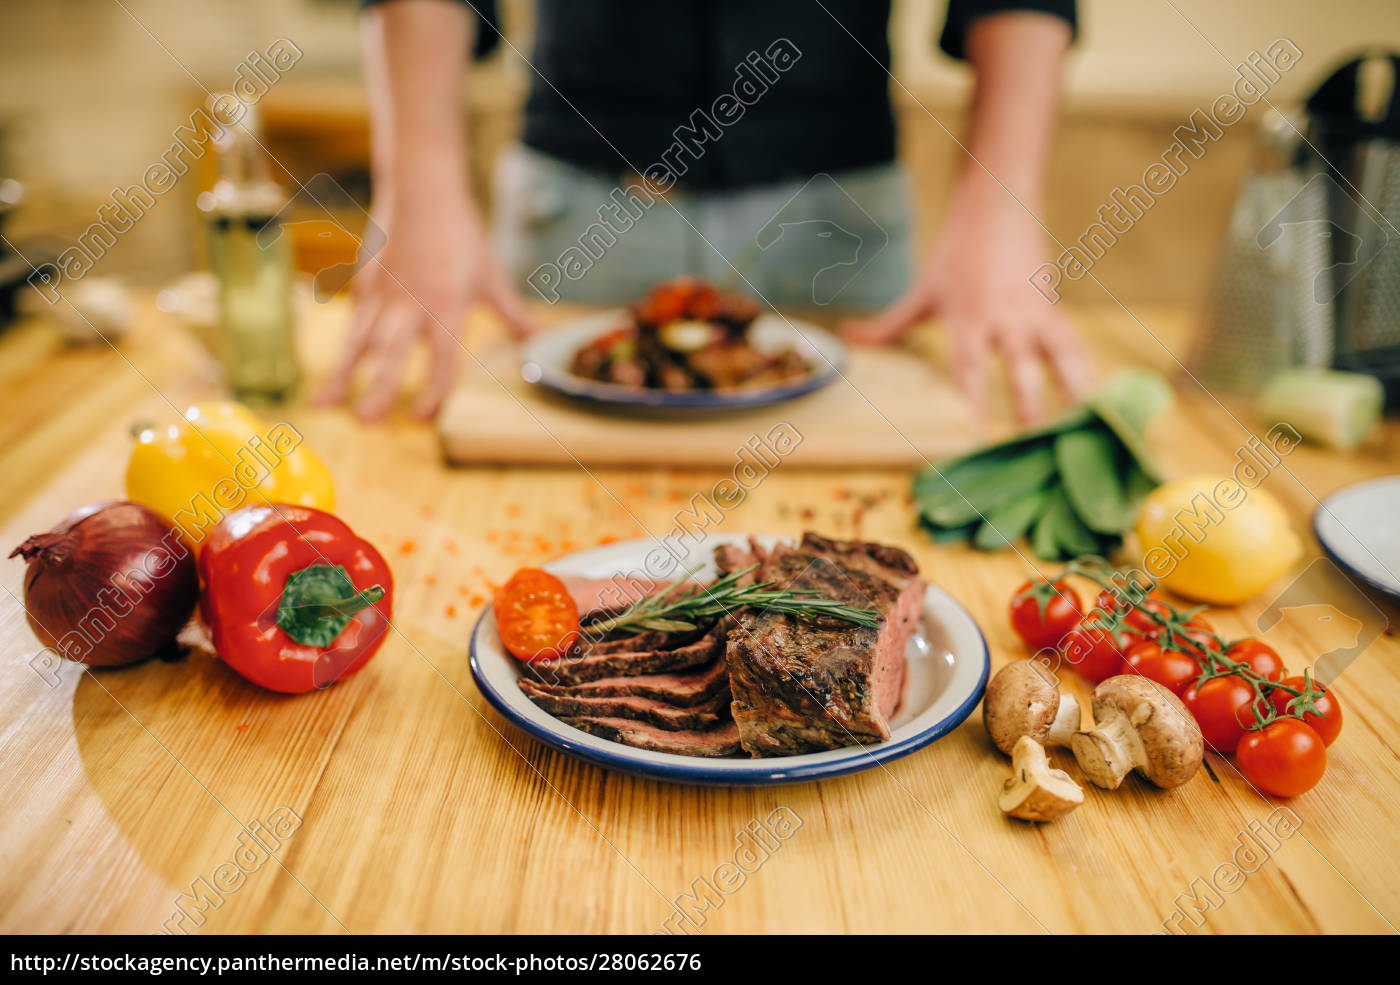 plate, wit, roasted, meat, slices, on - 28062676